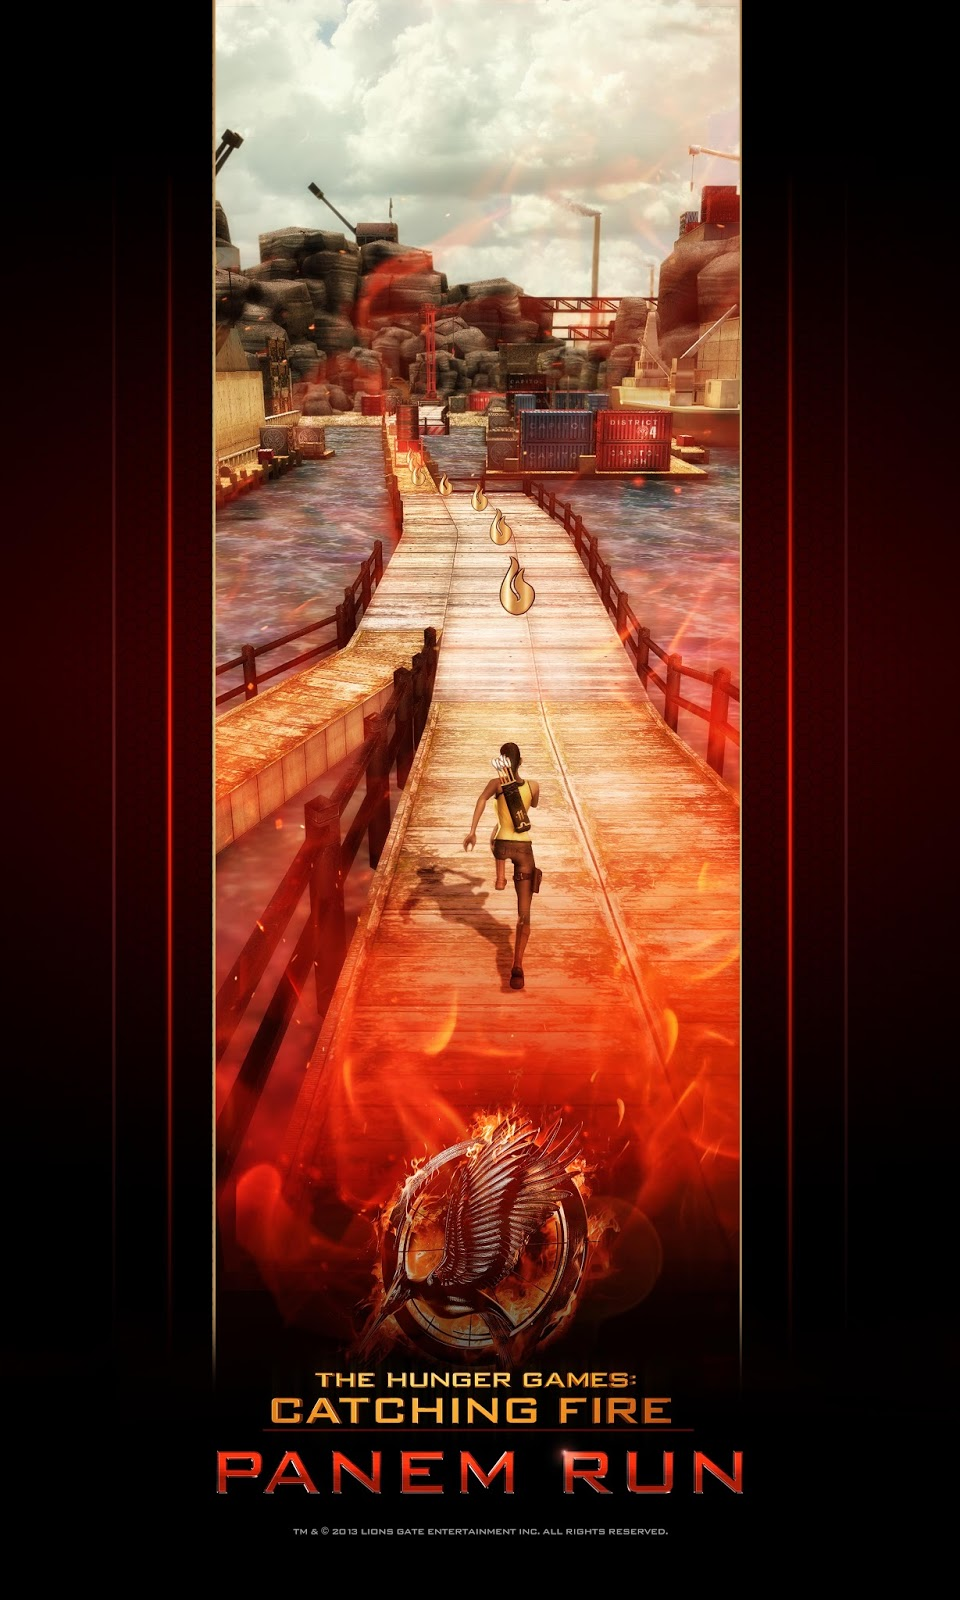 HUNGER GAMES: CATCHING FIRE (iOS/Android)